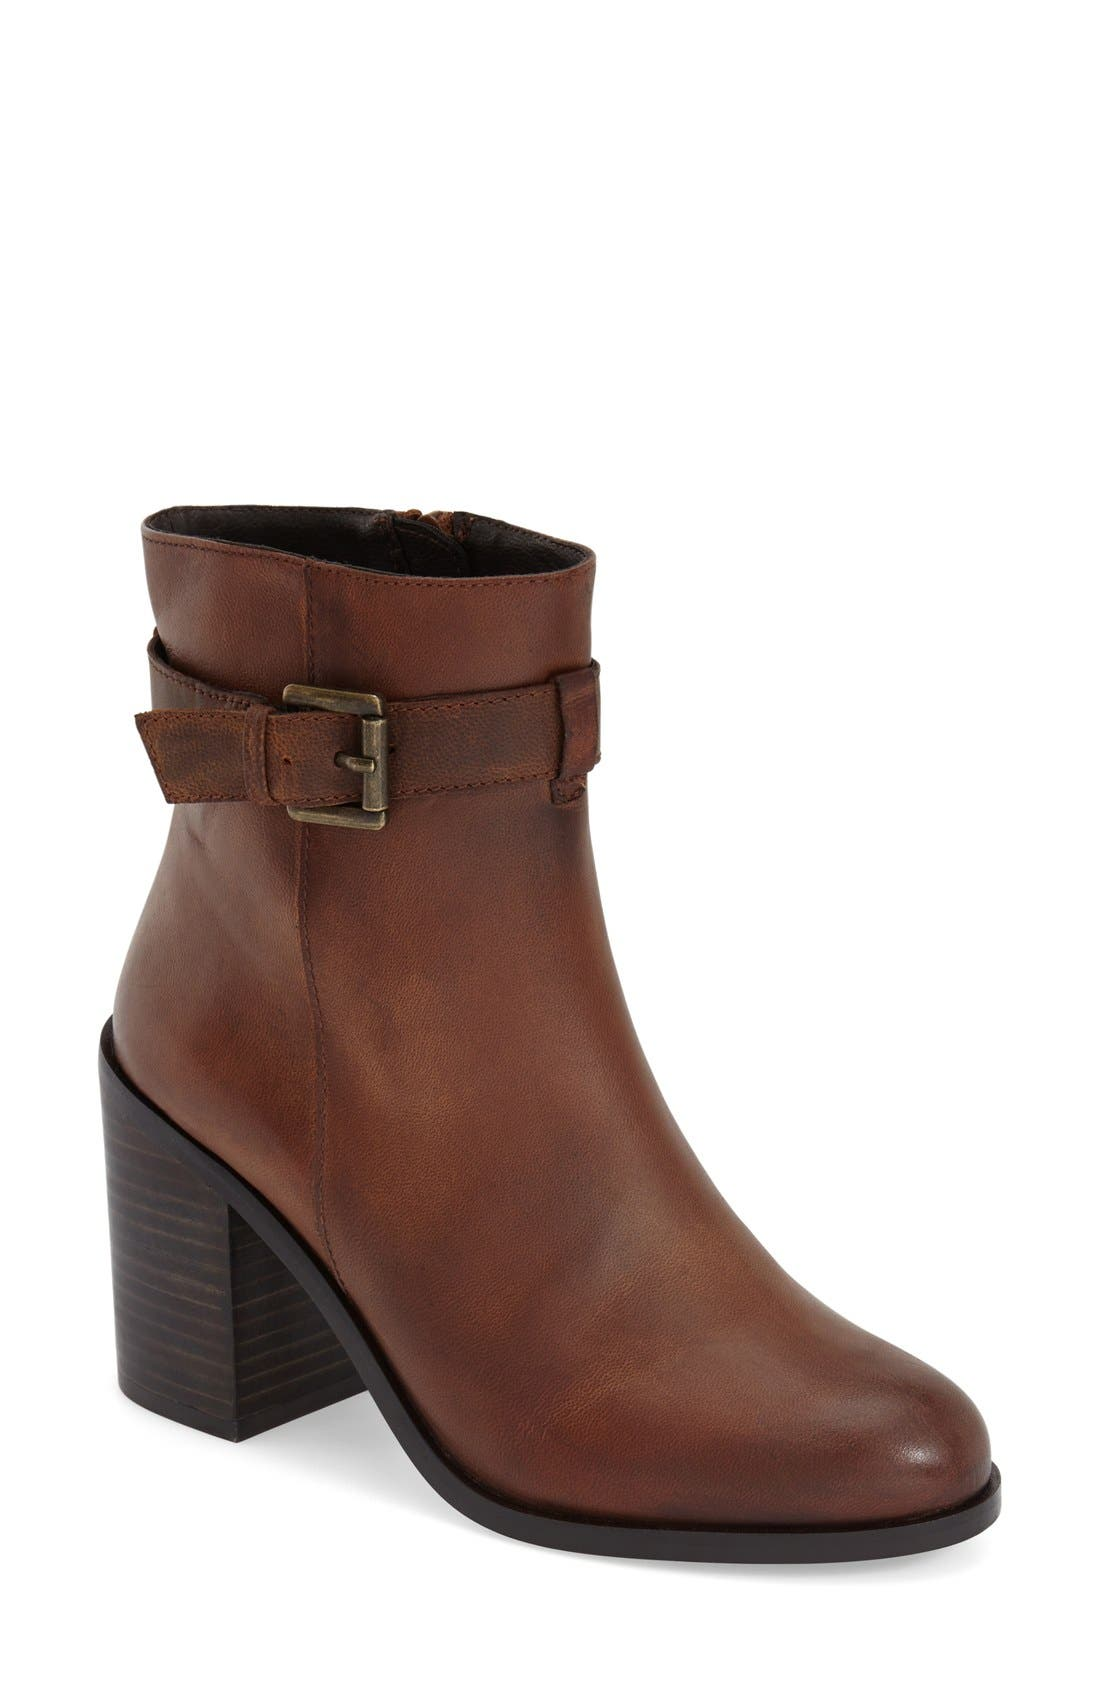 Alternate Image 1 Selected - Steve Madden 'Porshia' Bootie (Women)